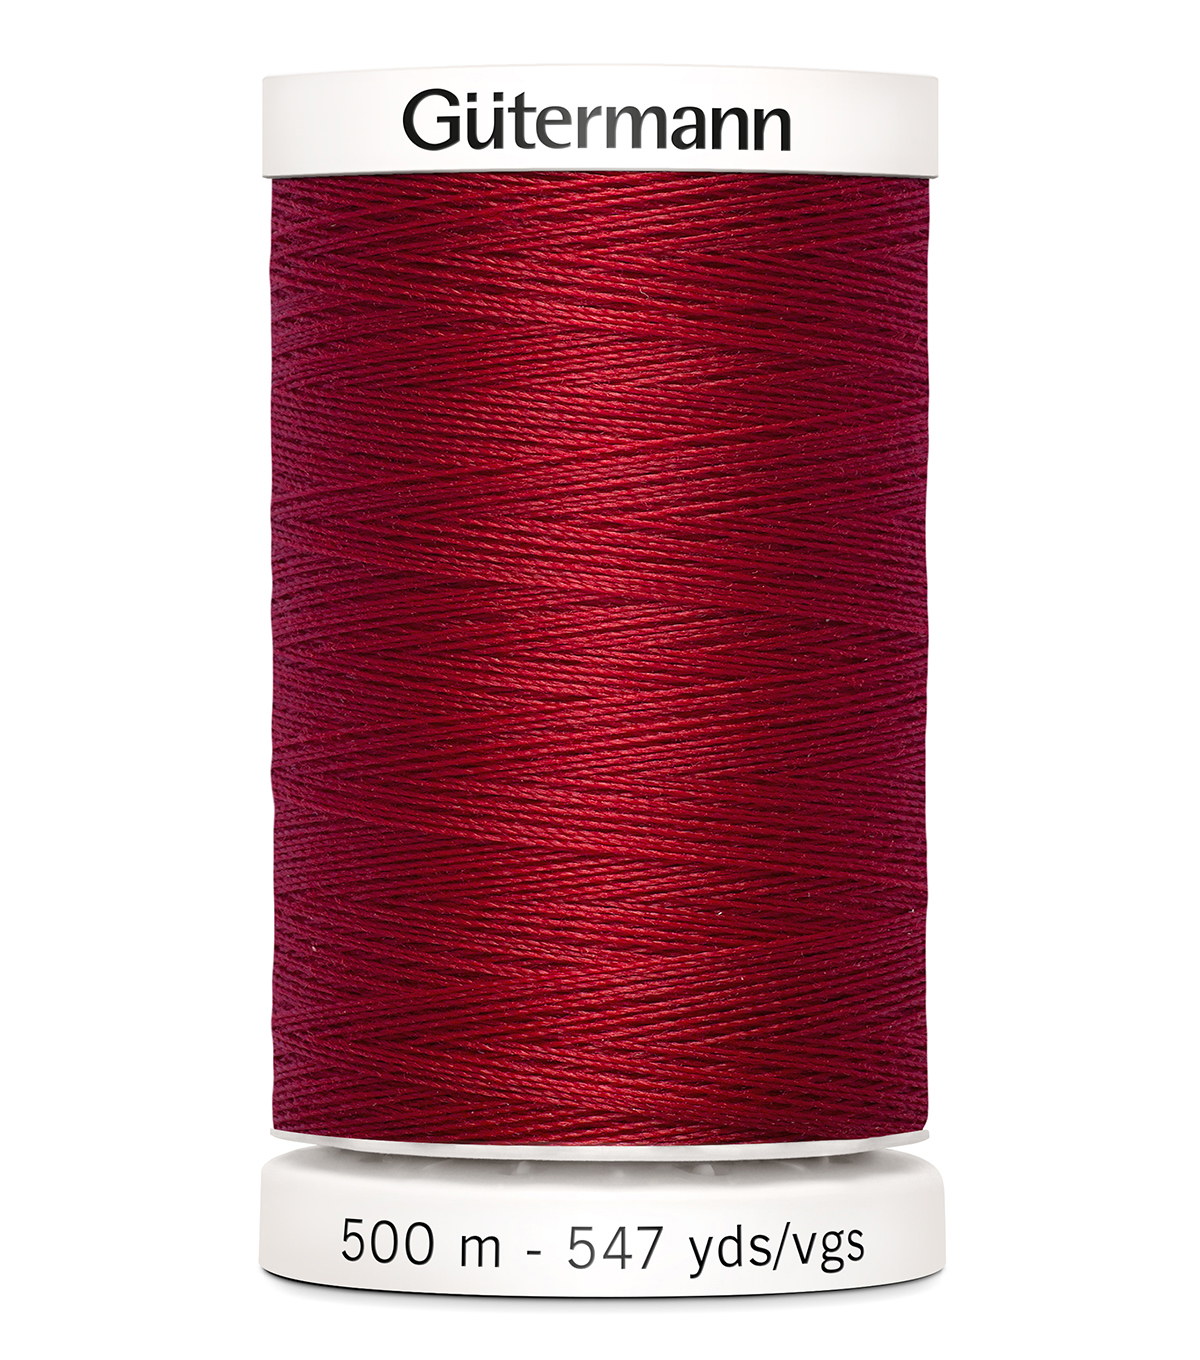 Gutermann Sew-All Thread 500 Meter, Chili Red